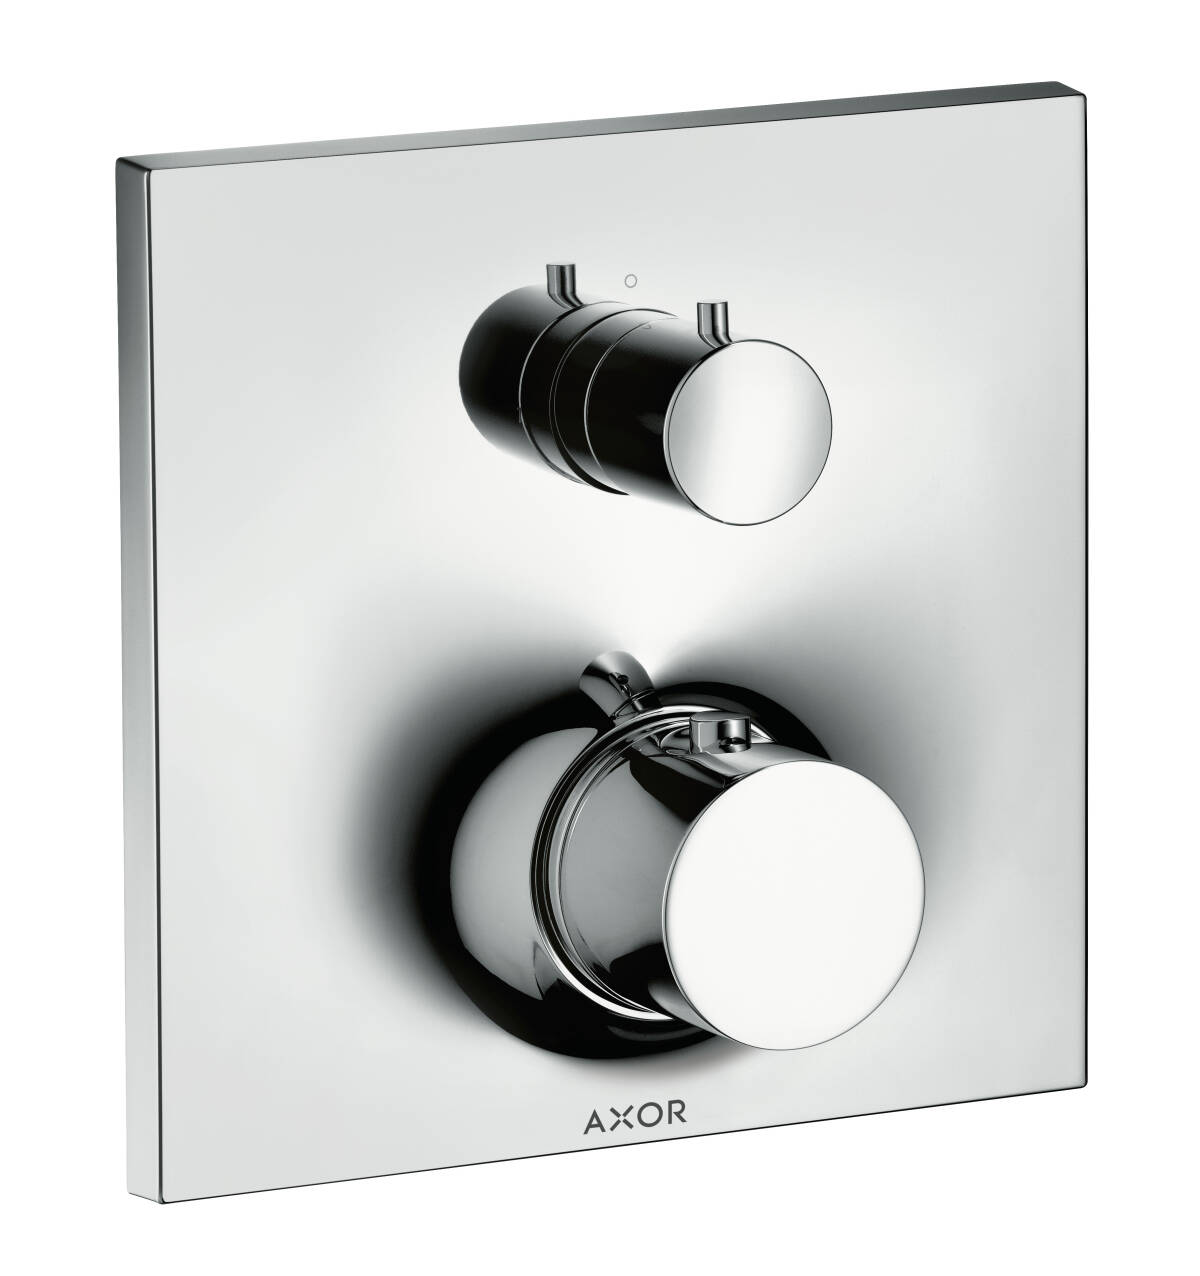 Thermostat for concealed installation with shut-off/ diverter valve, Polished Black Chrome, 18750330